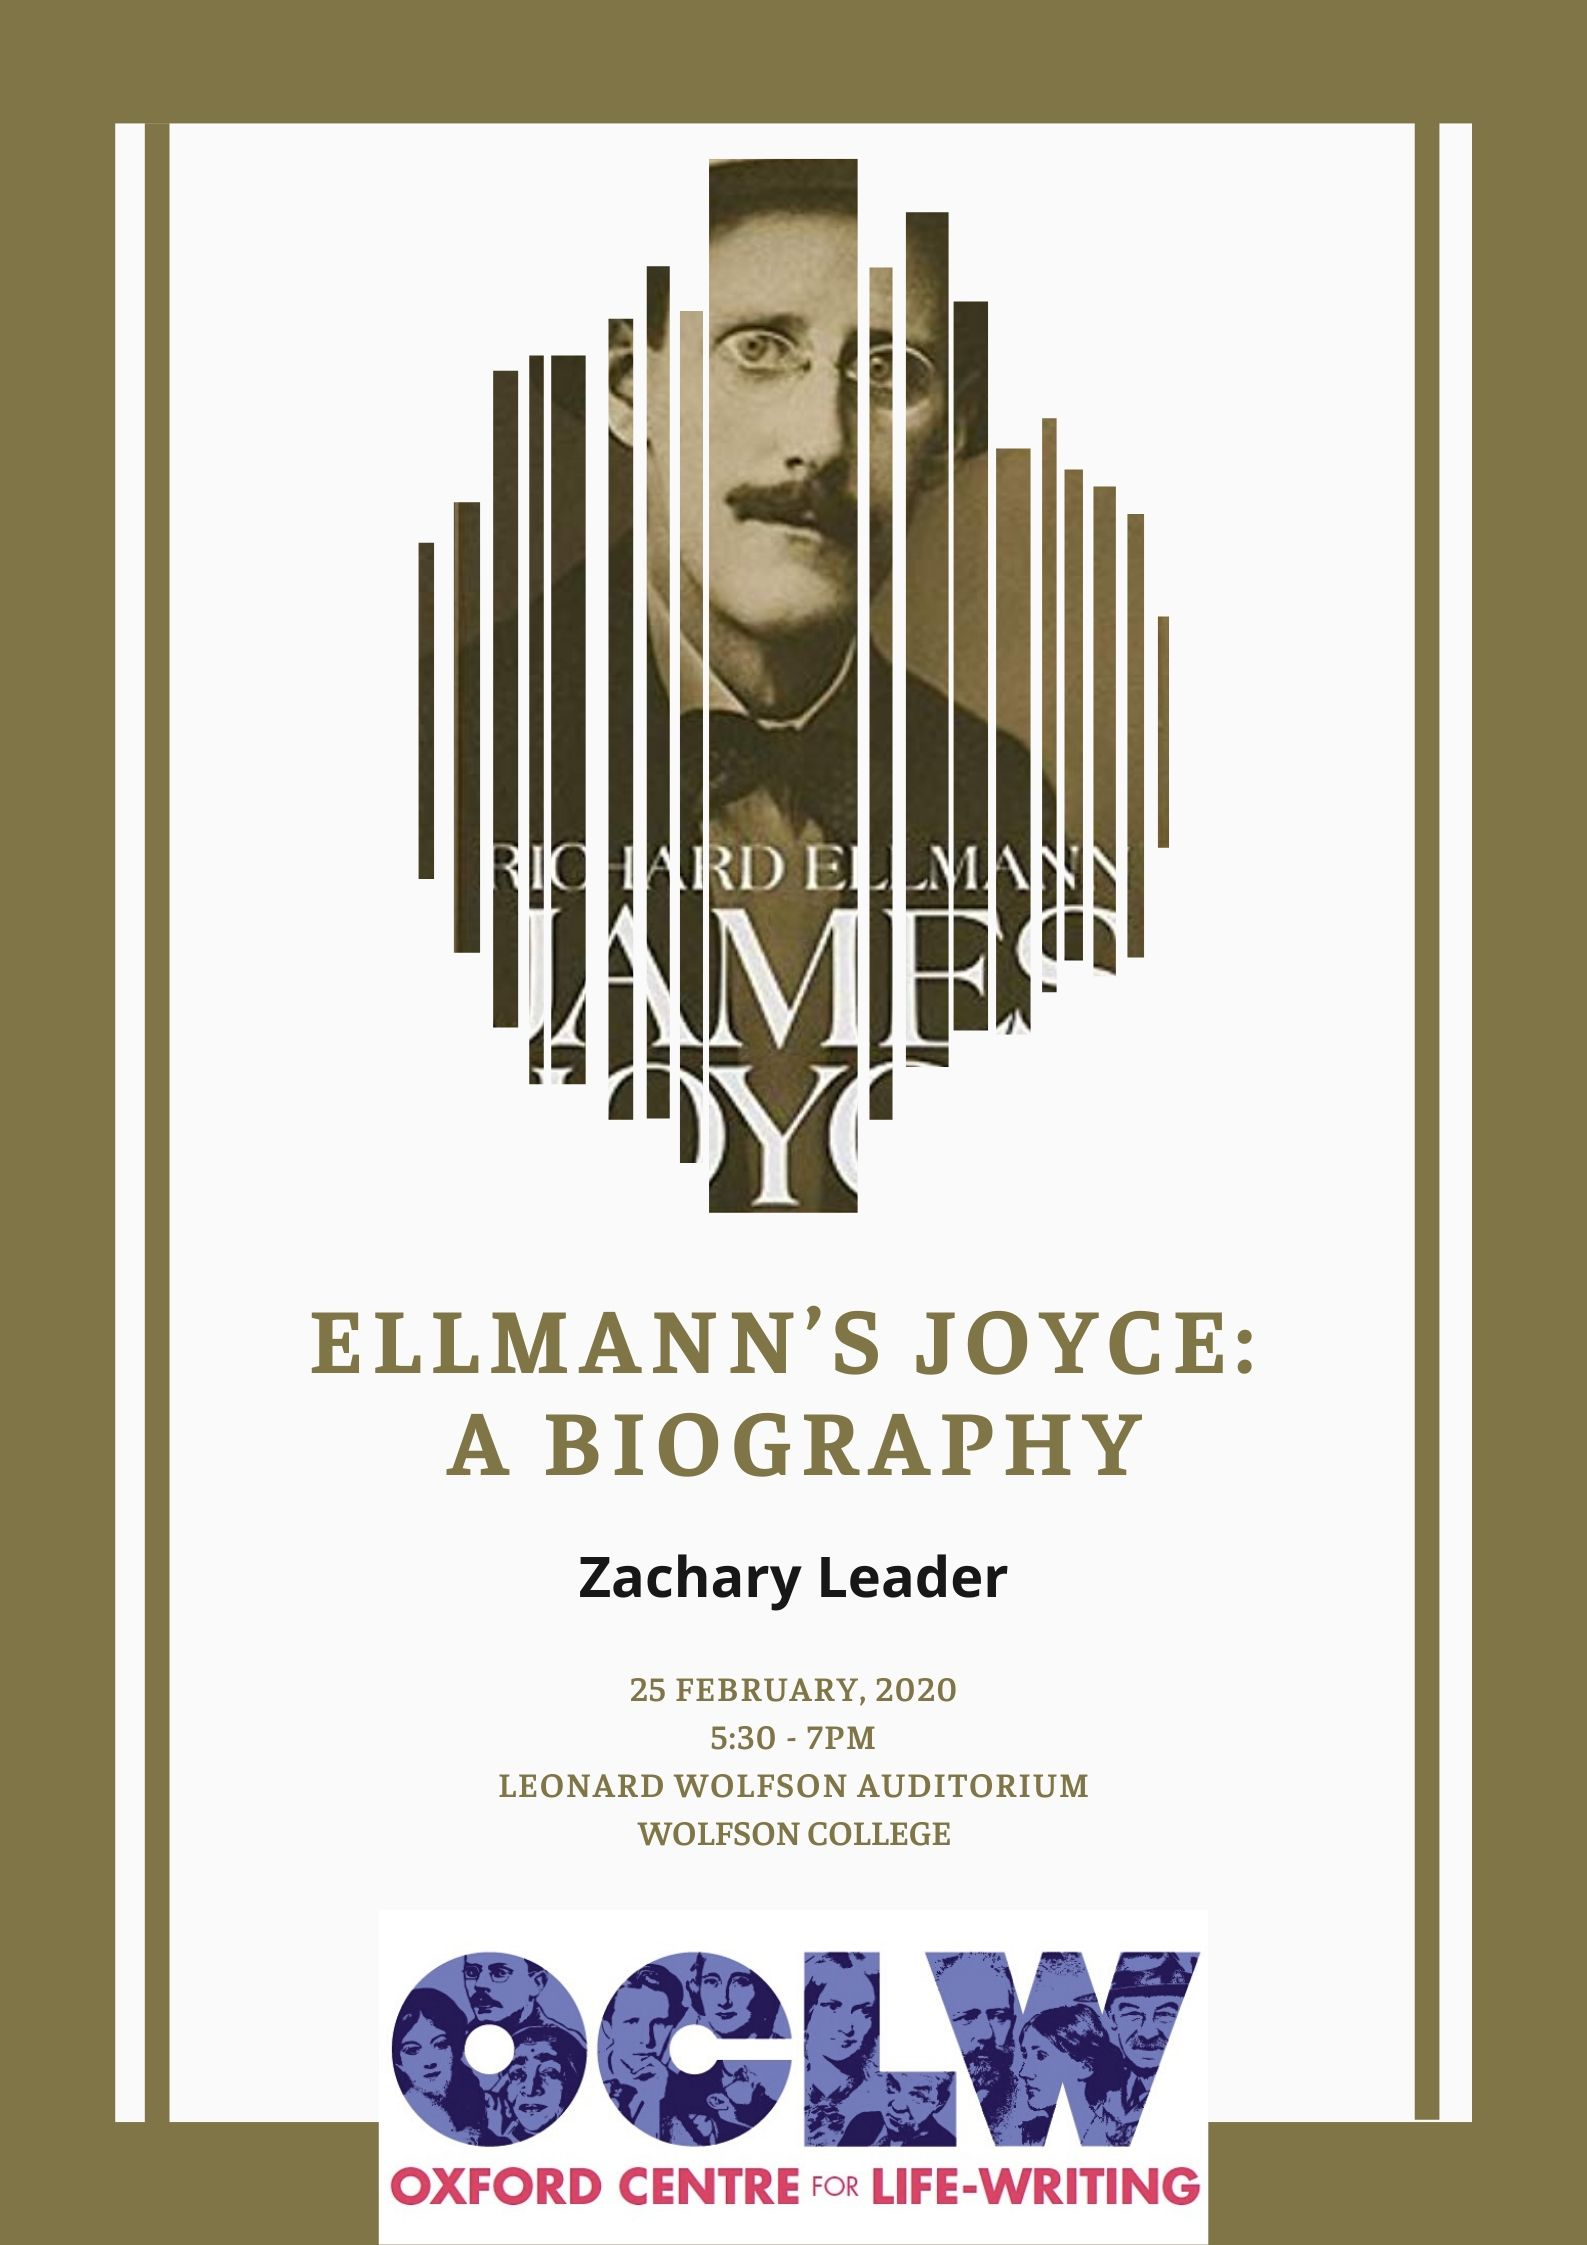 Zachary Leader on Ellmann's Joyce: A Biography